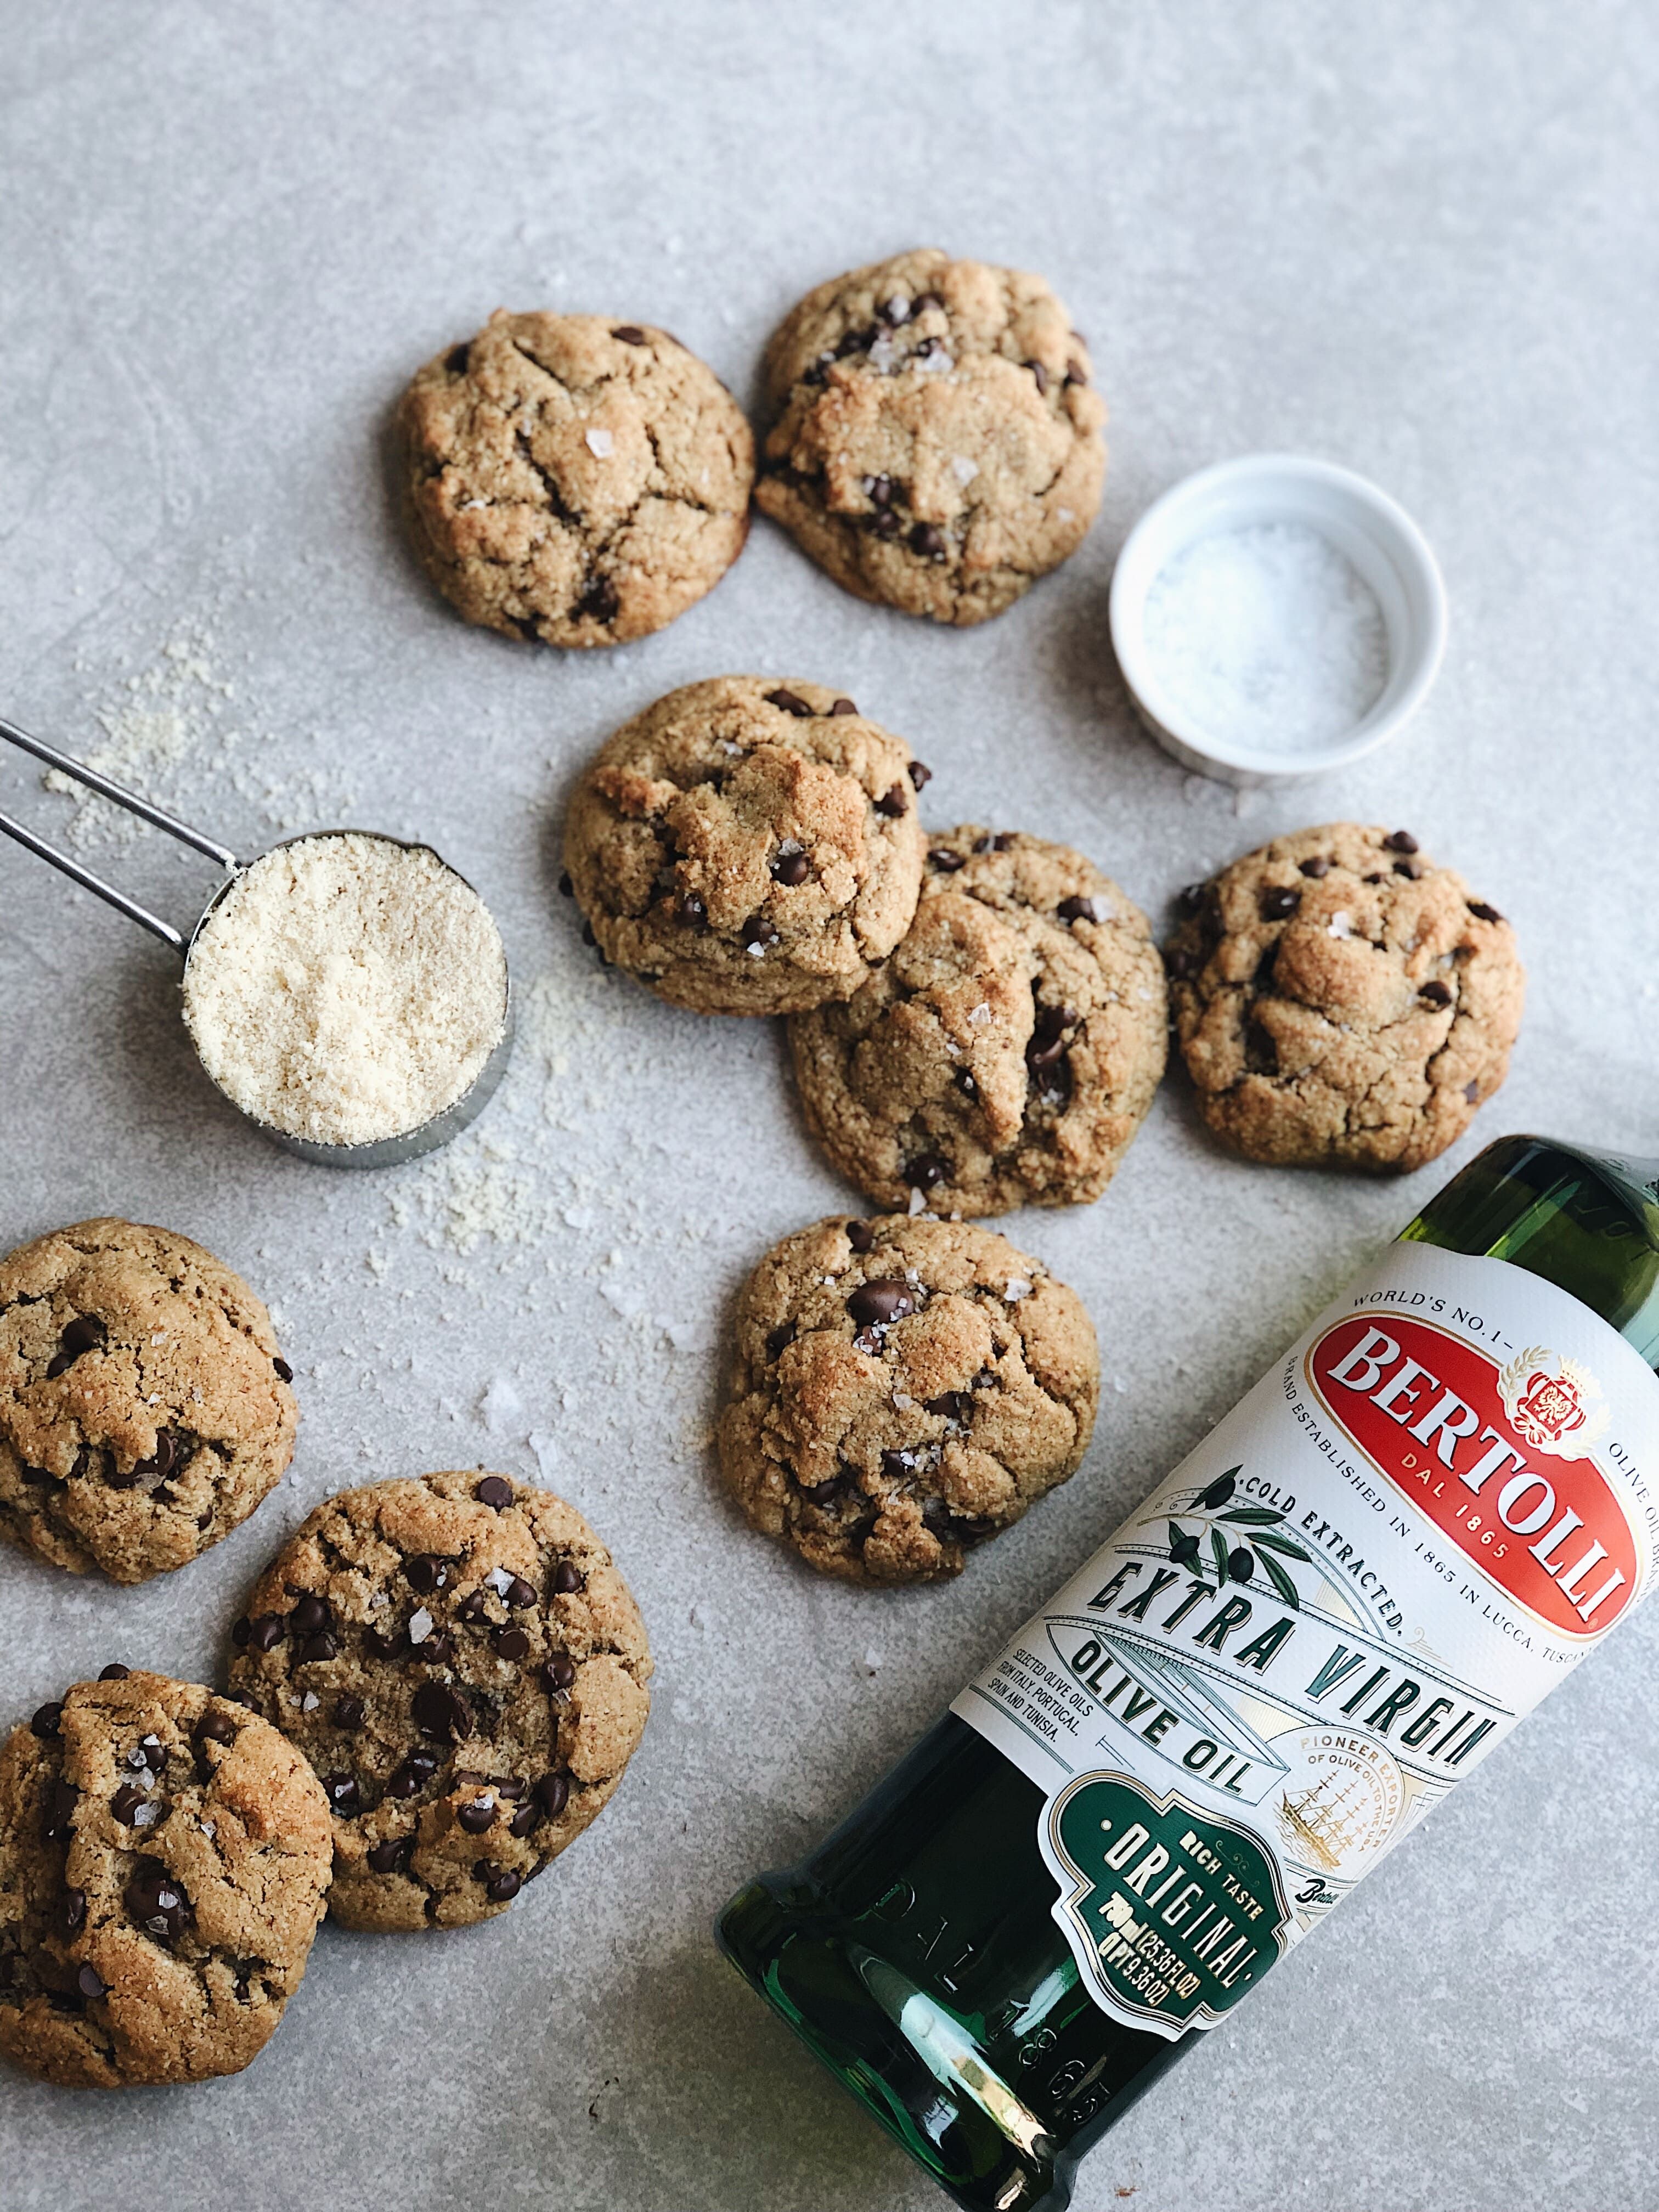 Olive Oil Almond Cookies representing quality Bertolli Olive Oil